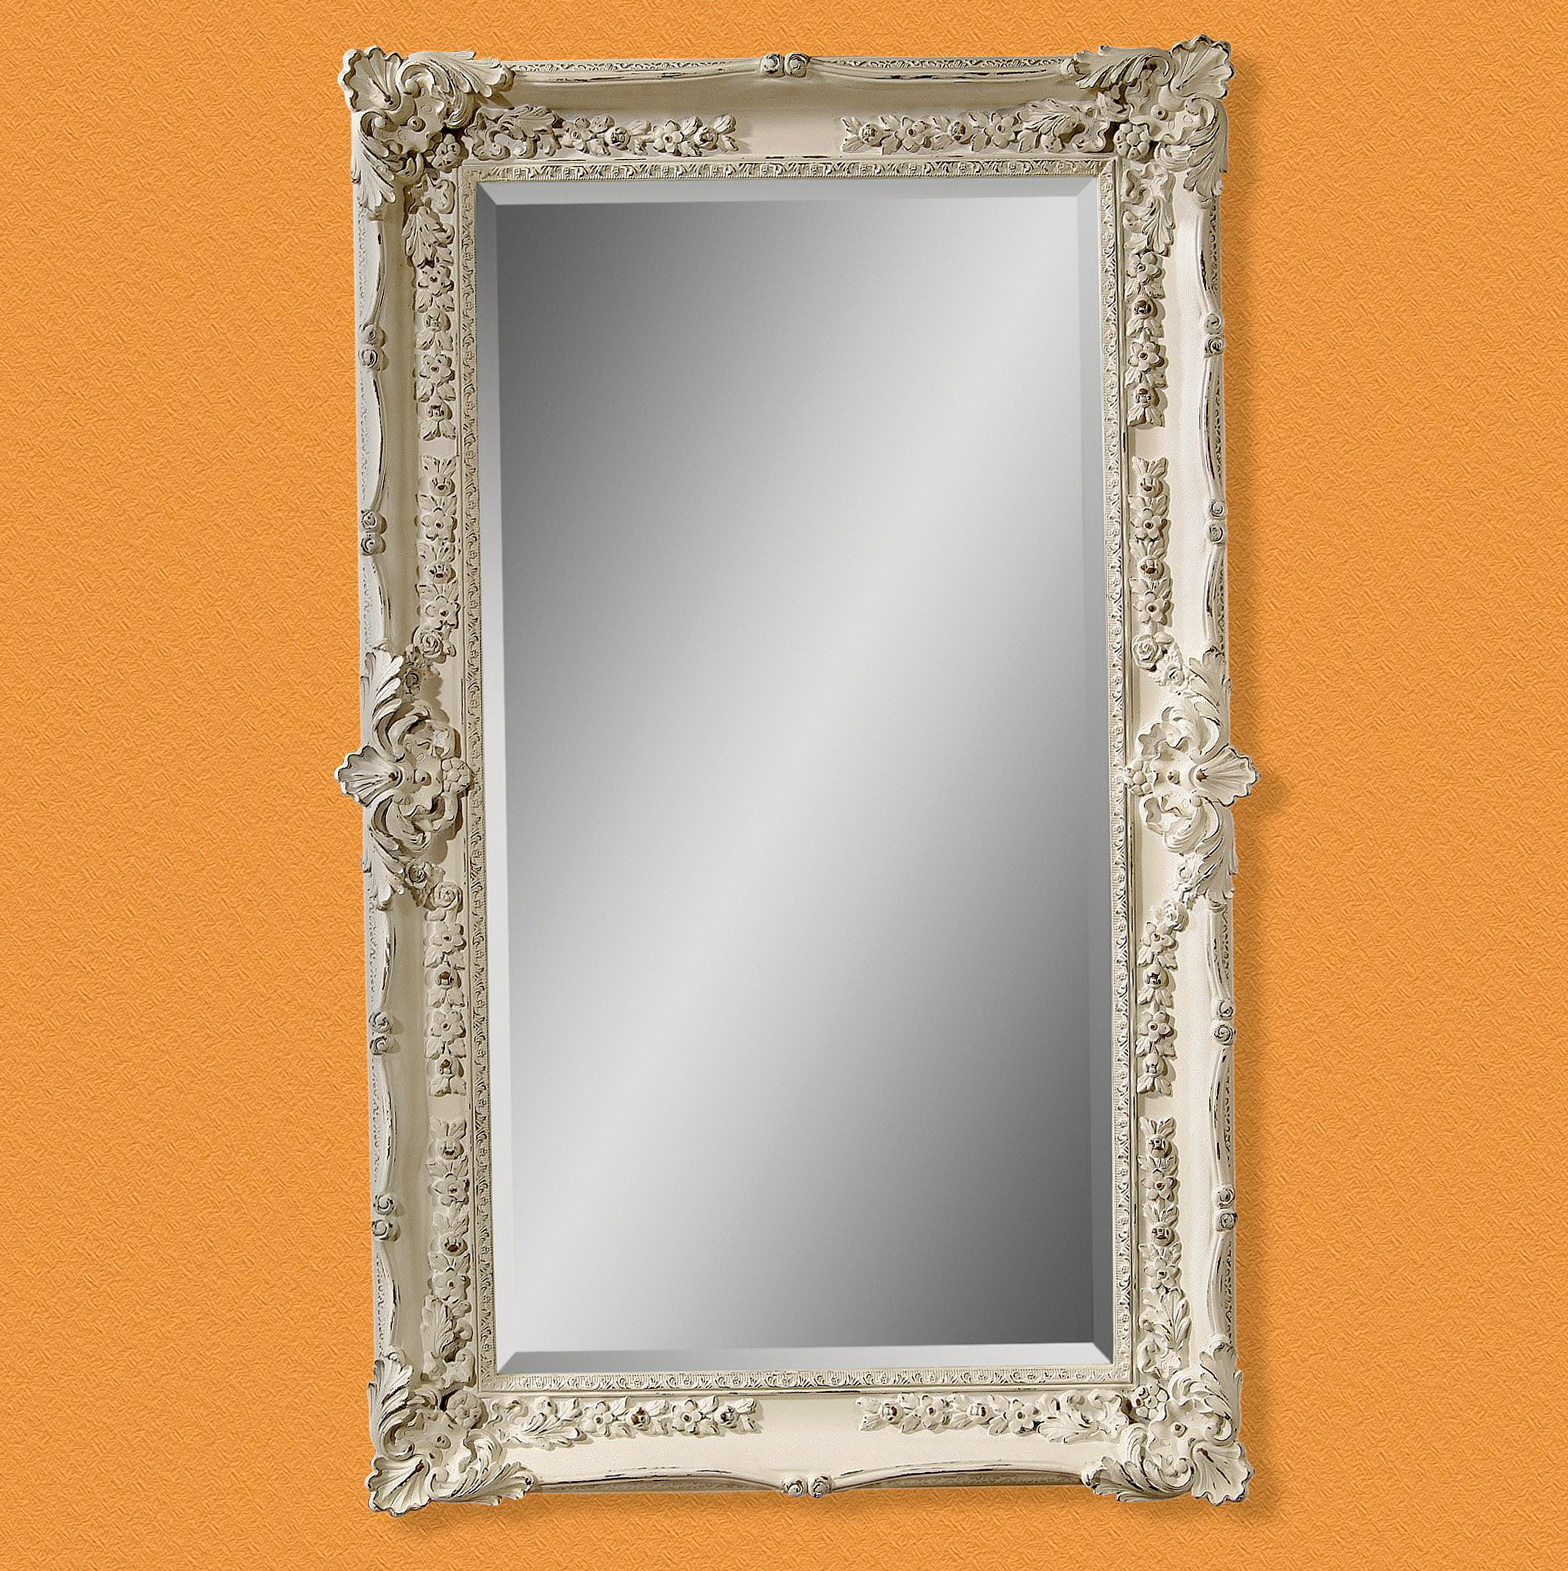 Antique Wall Mirrors For Sale